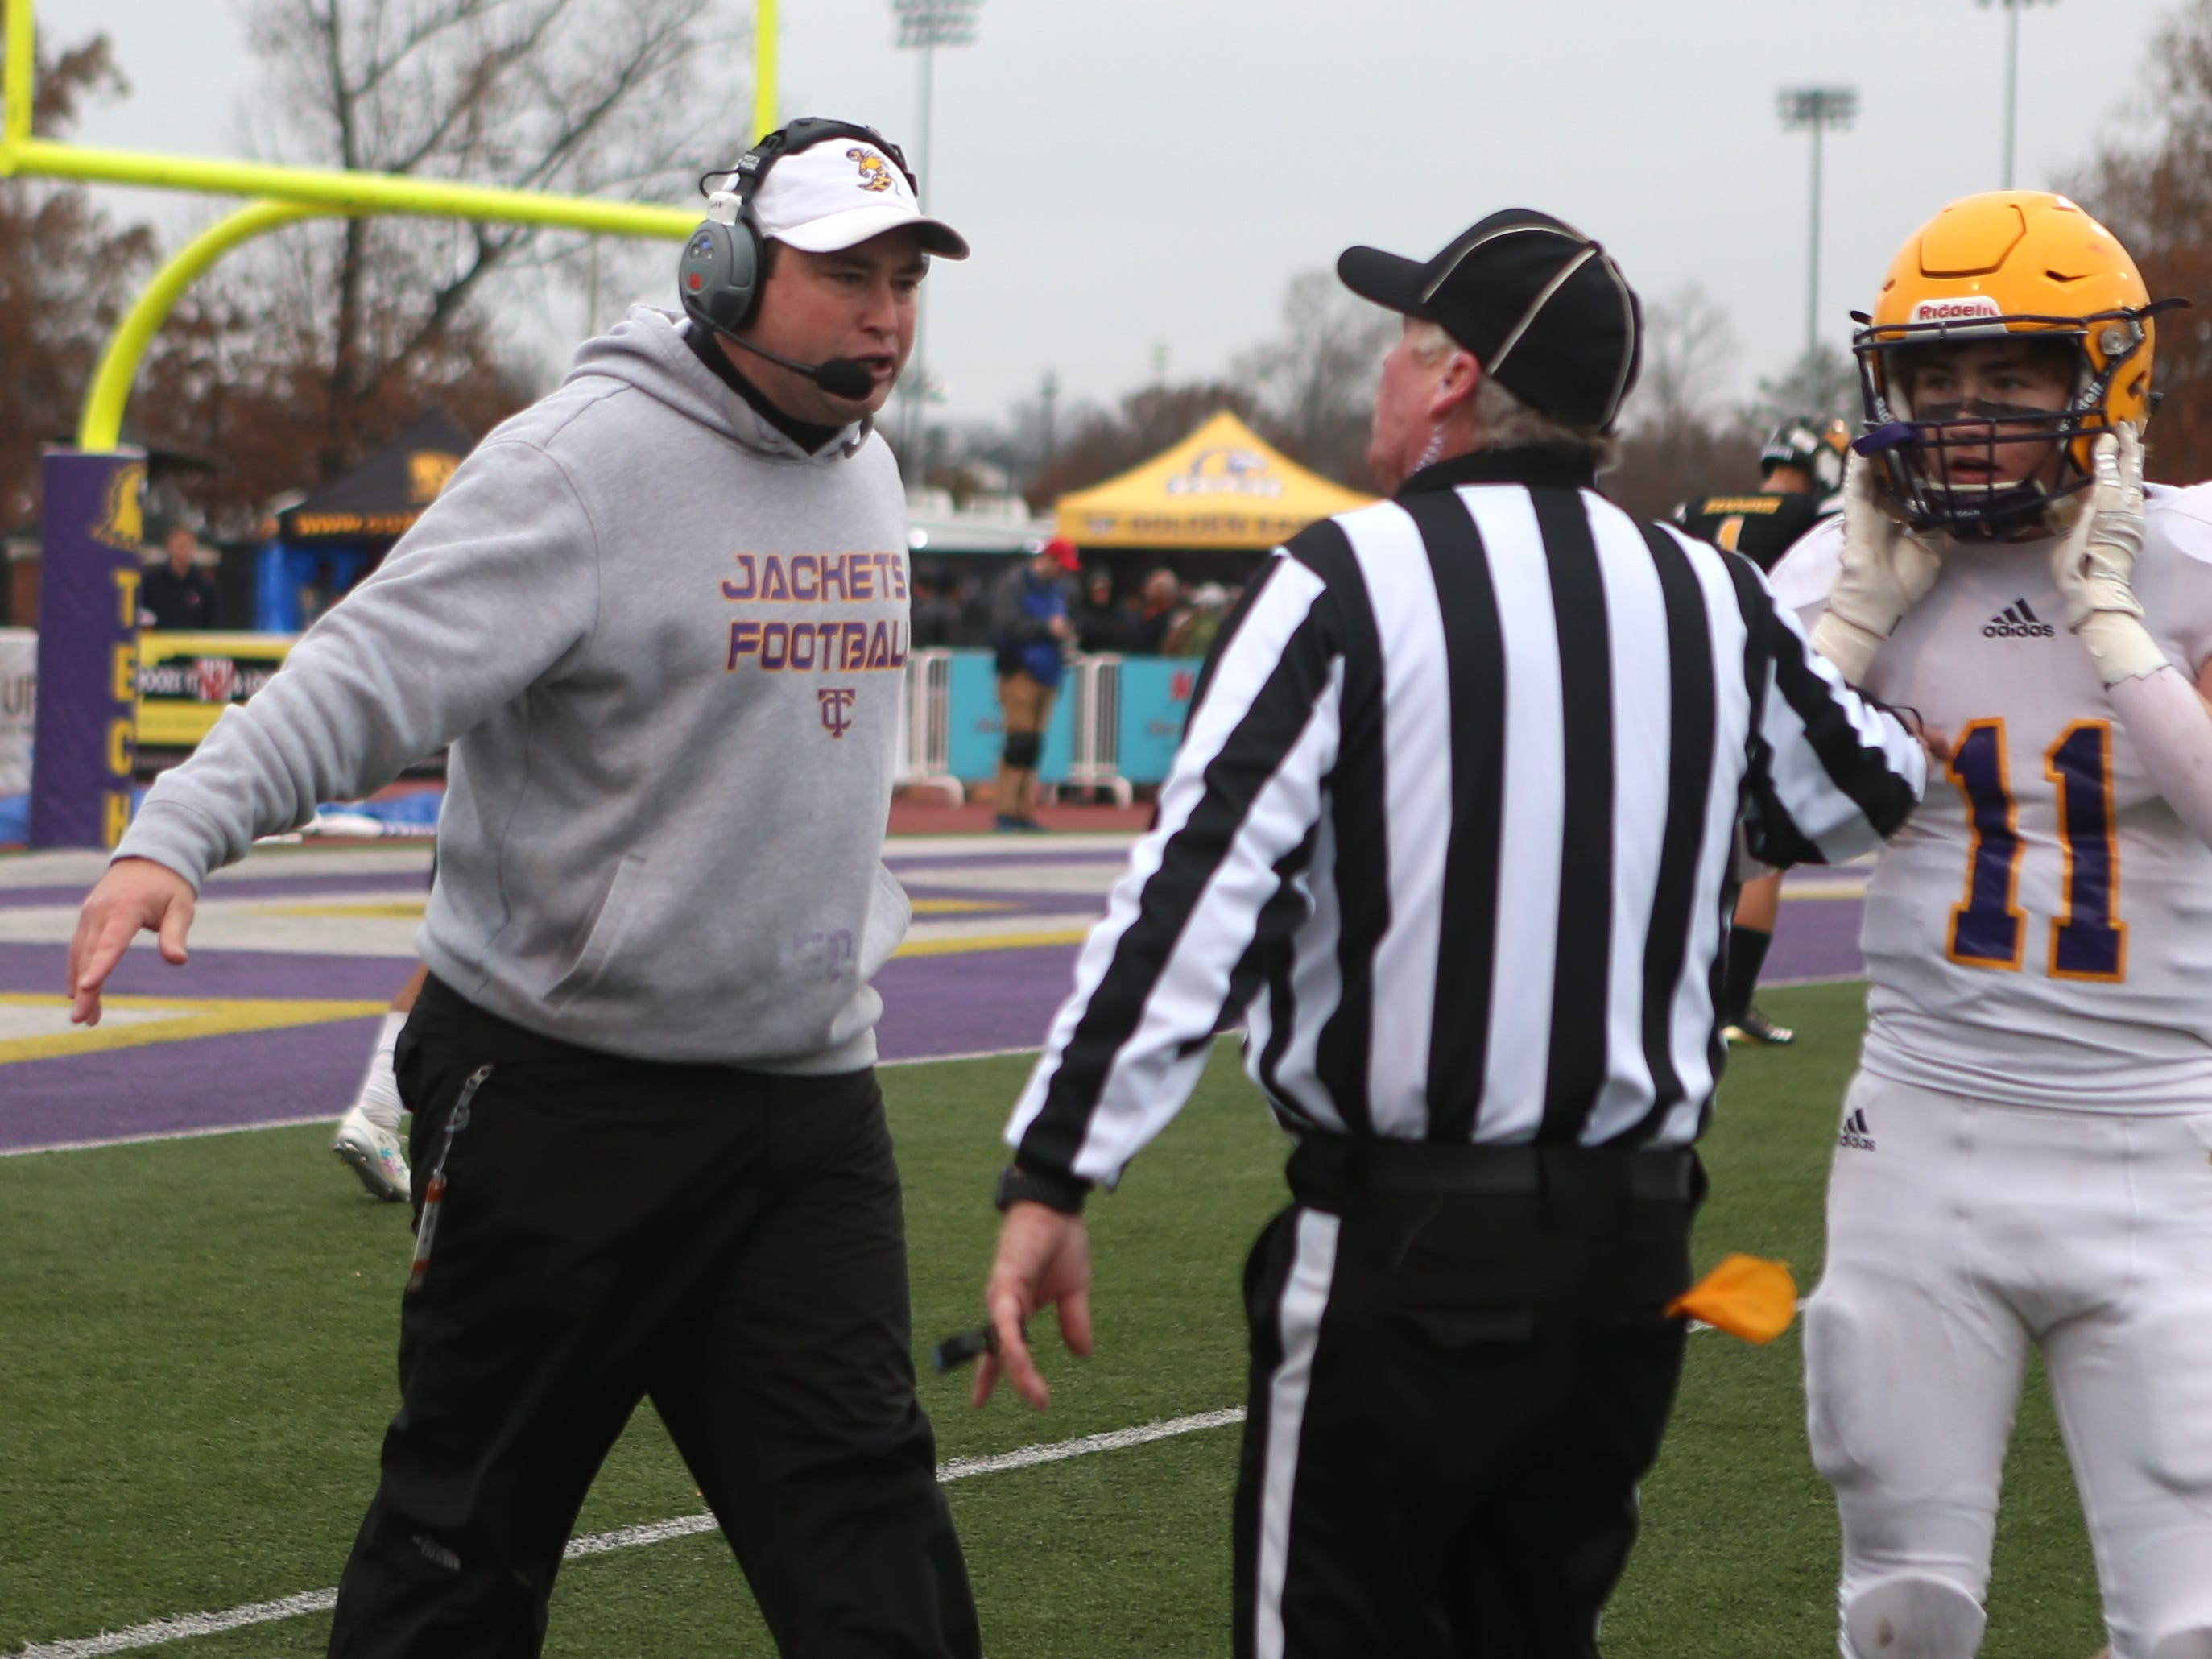 Trousdale head coach Brad Waggoner argues with a referee in the second quarter during the Class 2A BlueCross Bowl state championship at Tennessee Tech's Tucker Stadium in Cookeville, Tenn., on Thursday, Nov. 29, 2018.